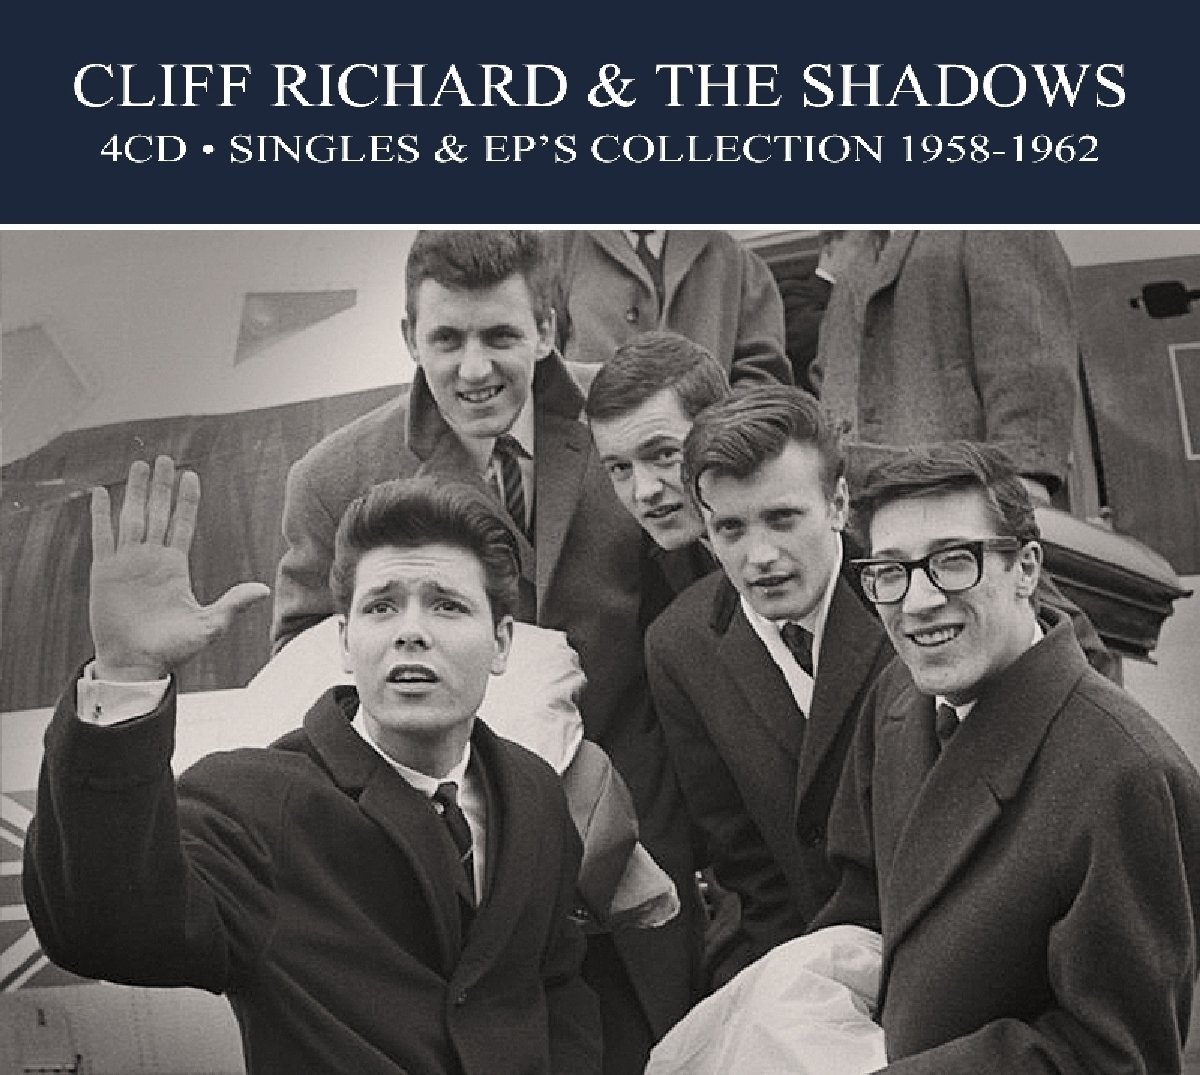 CD : Cliff Richard & the Shadows - Singles & Ep Collection 1958-1962 (Digipack Packaging, Germany - Import)